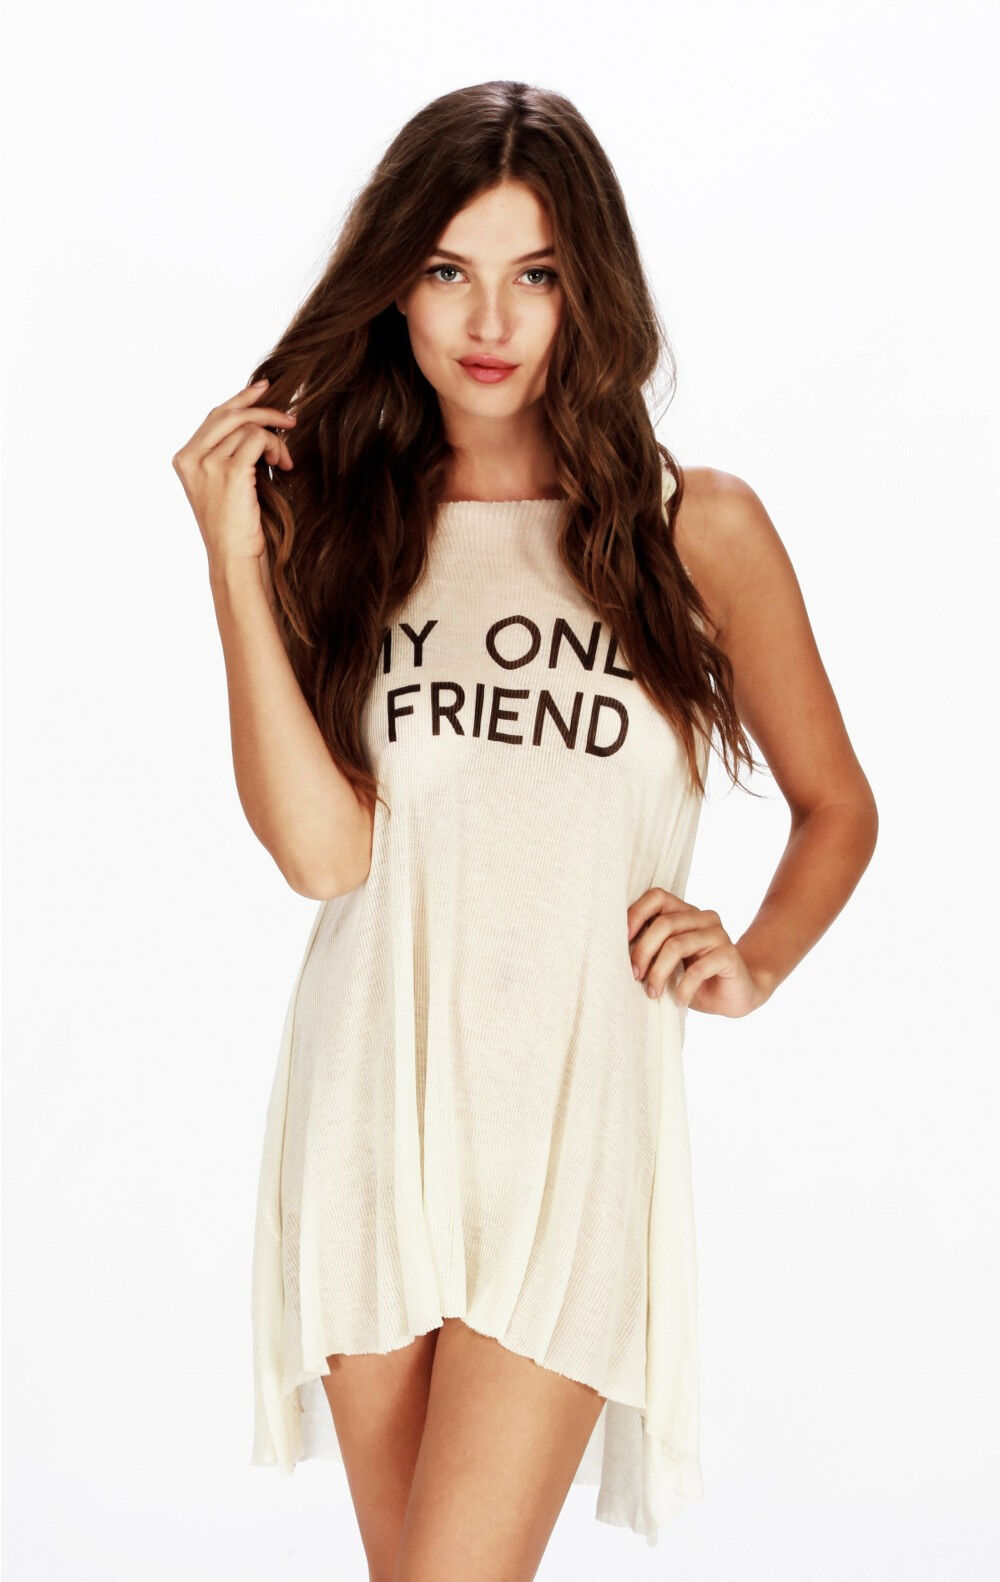 Wildfox Couture  Wilson  Wrecked Tank, Vintage Lace Farbe, Größe S